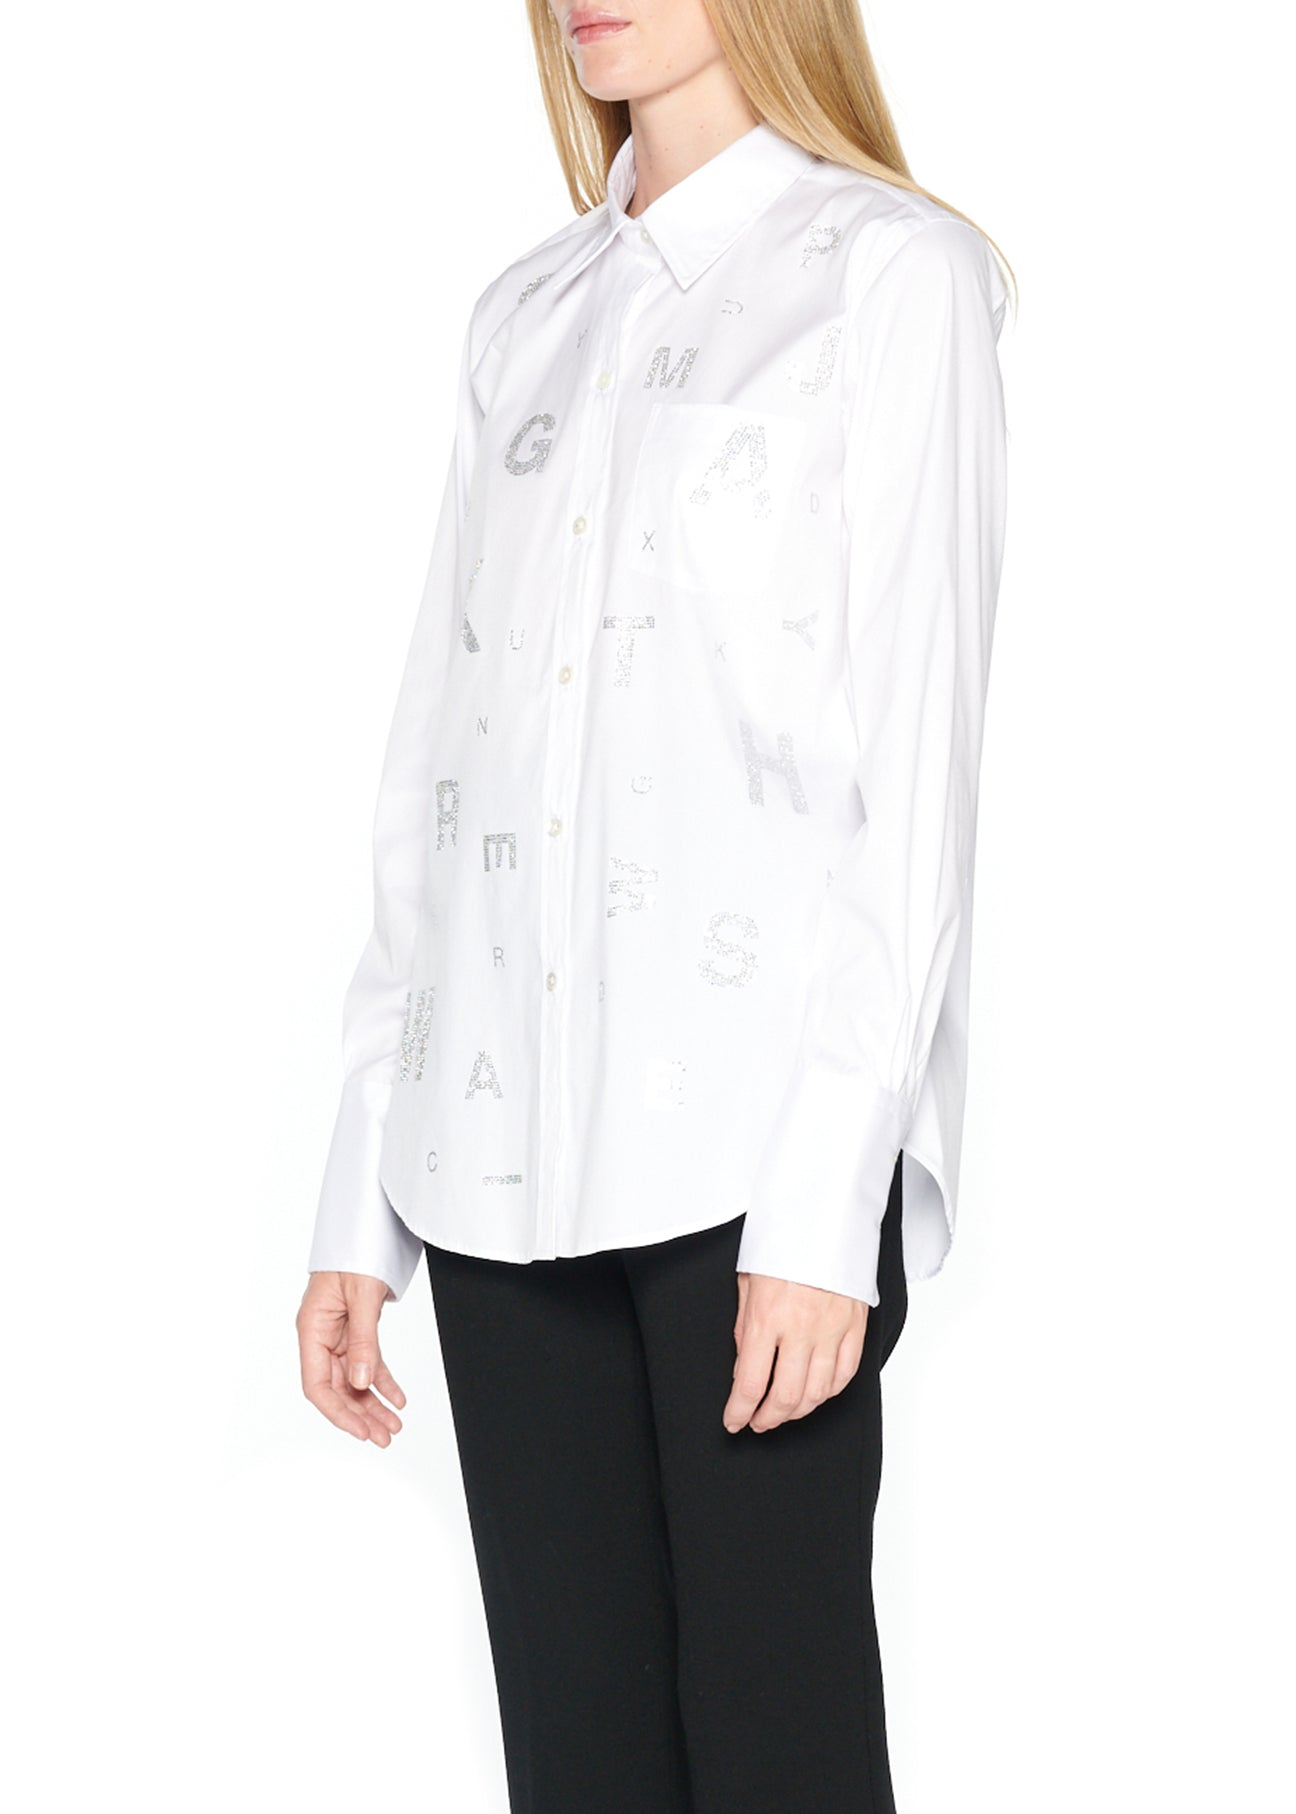 'EYE TEST' CLASSIC SHIRT - BLOUSE - Libertine